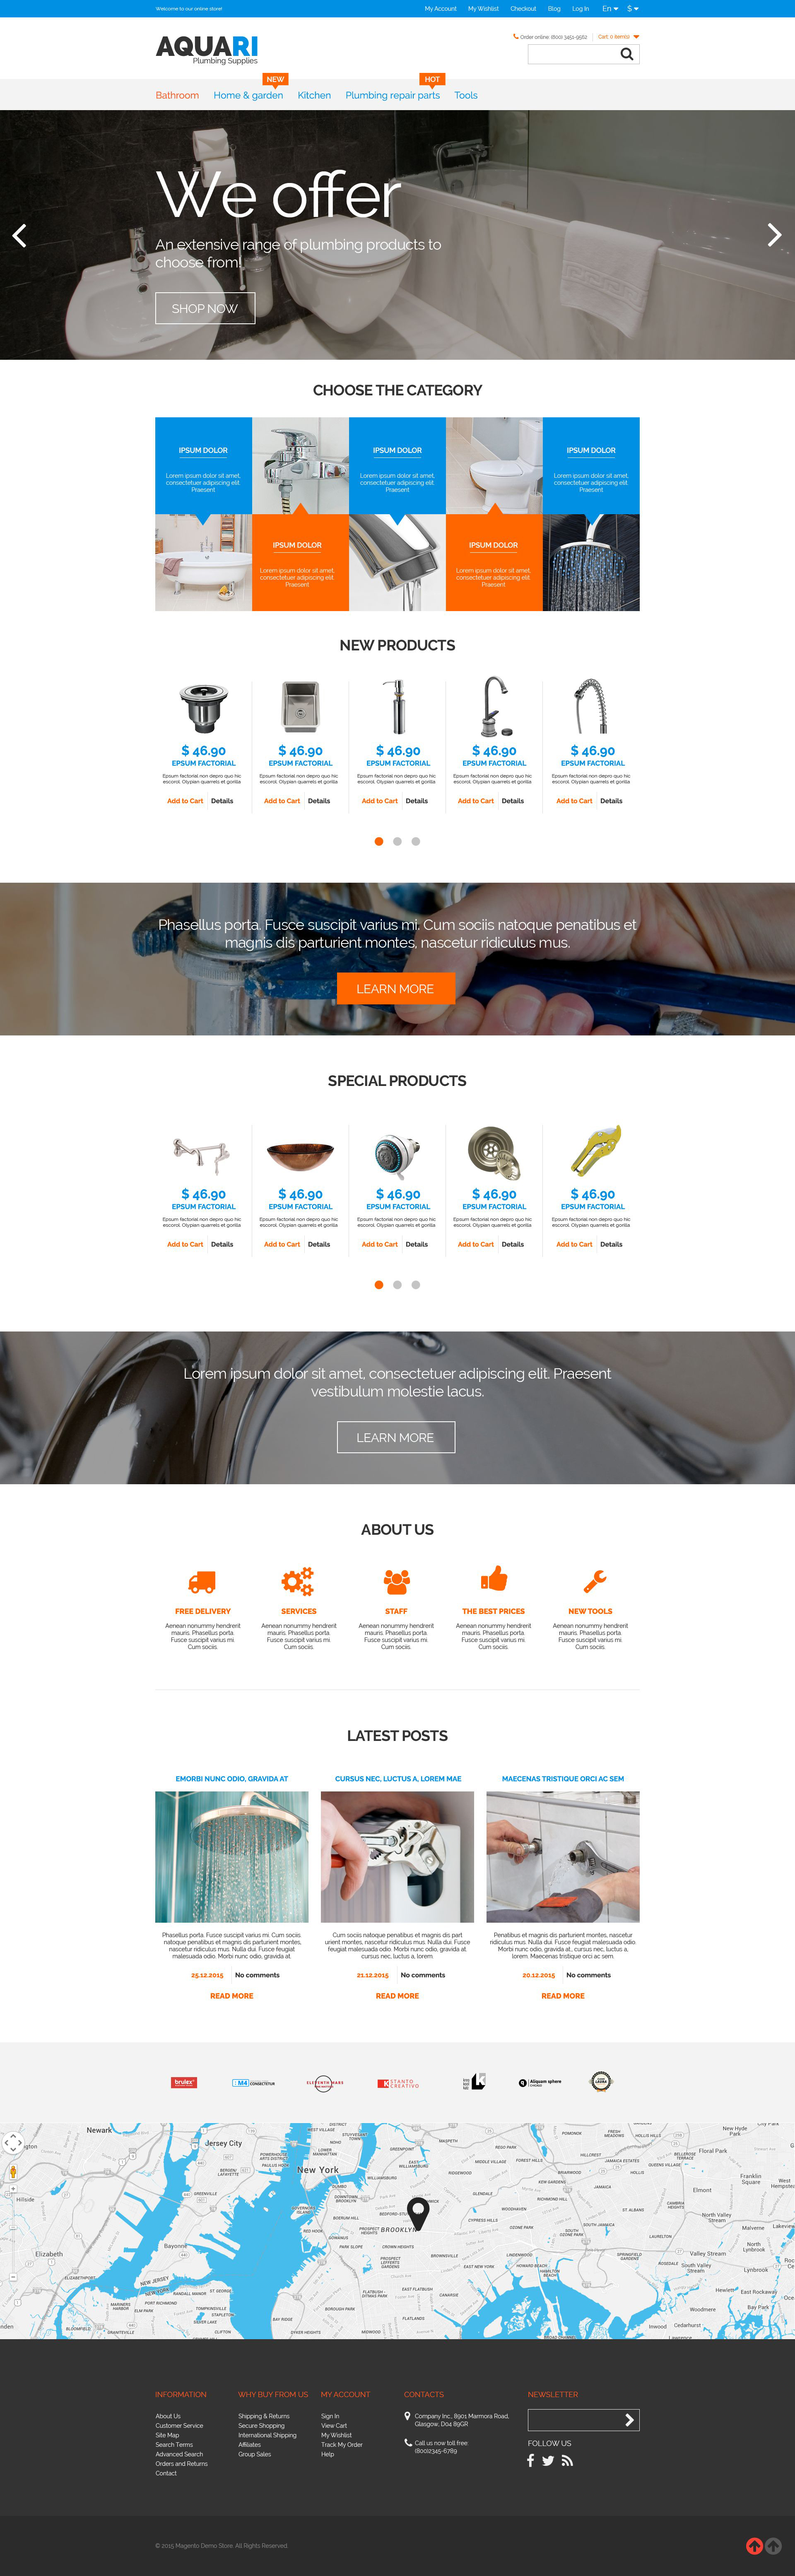 The Aquari Plumbing Company Magento Design 53128, one of the best Magento themes of its kind (most popular, maintenance services), also known as aquari plumbing company Magento template, drain Magento template, heating system Magento template, installation Magento template, preventive Magento template, maintenance Magento template, repair Magento template, spanner Magento template, tools Magento template, soil-pipe Magento template, sewer Magento template, stand-pipe Magento template, tap Magento template, stop-cock Magento template, faucet Magento template, sewer Magento template, sink Magento template, wash-bowl Magento template, employment Magento template, staff Magento template, master Magento template, plumber Magento template, tips Magento template, hint Magento template, standard Magento template, offer Magento template, experience Magento template, special expert and related with aquari plumbing company, drain, heating system, installation, preventive, maintenance, repair, spanner, tools, soil-pipe, sewer, stand-pipe, tap, stop-cock, faucet, sewer, sink, wash-bowl, employment, staff, master, plumber, tips, hint, standard, offer, experience, special expert, etc.